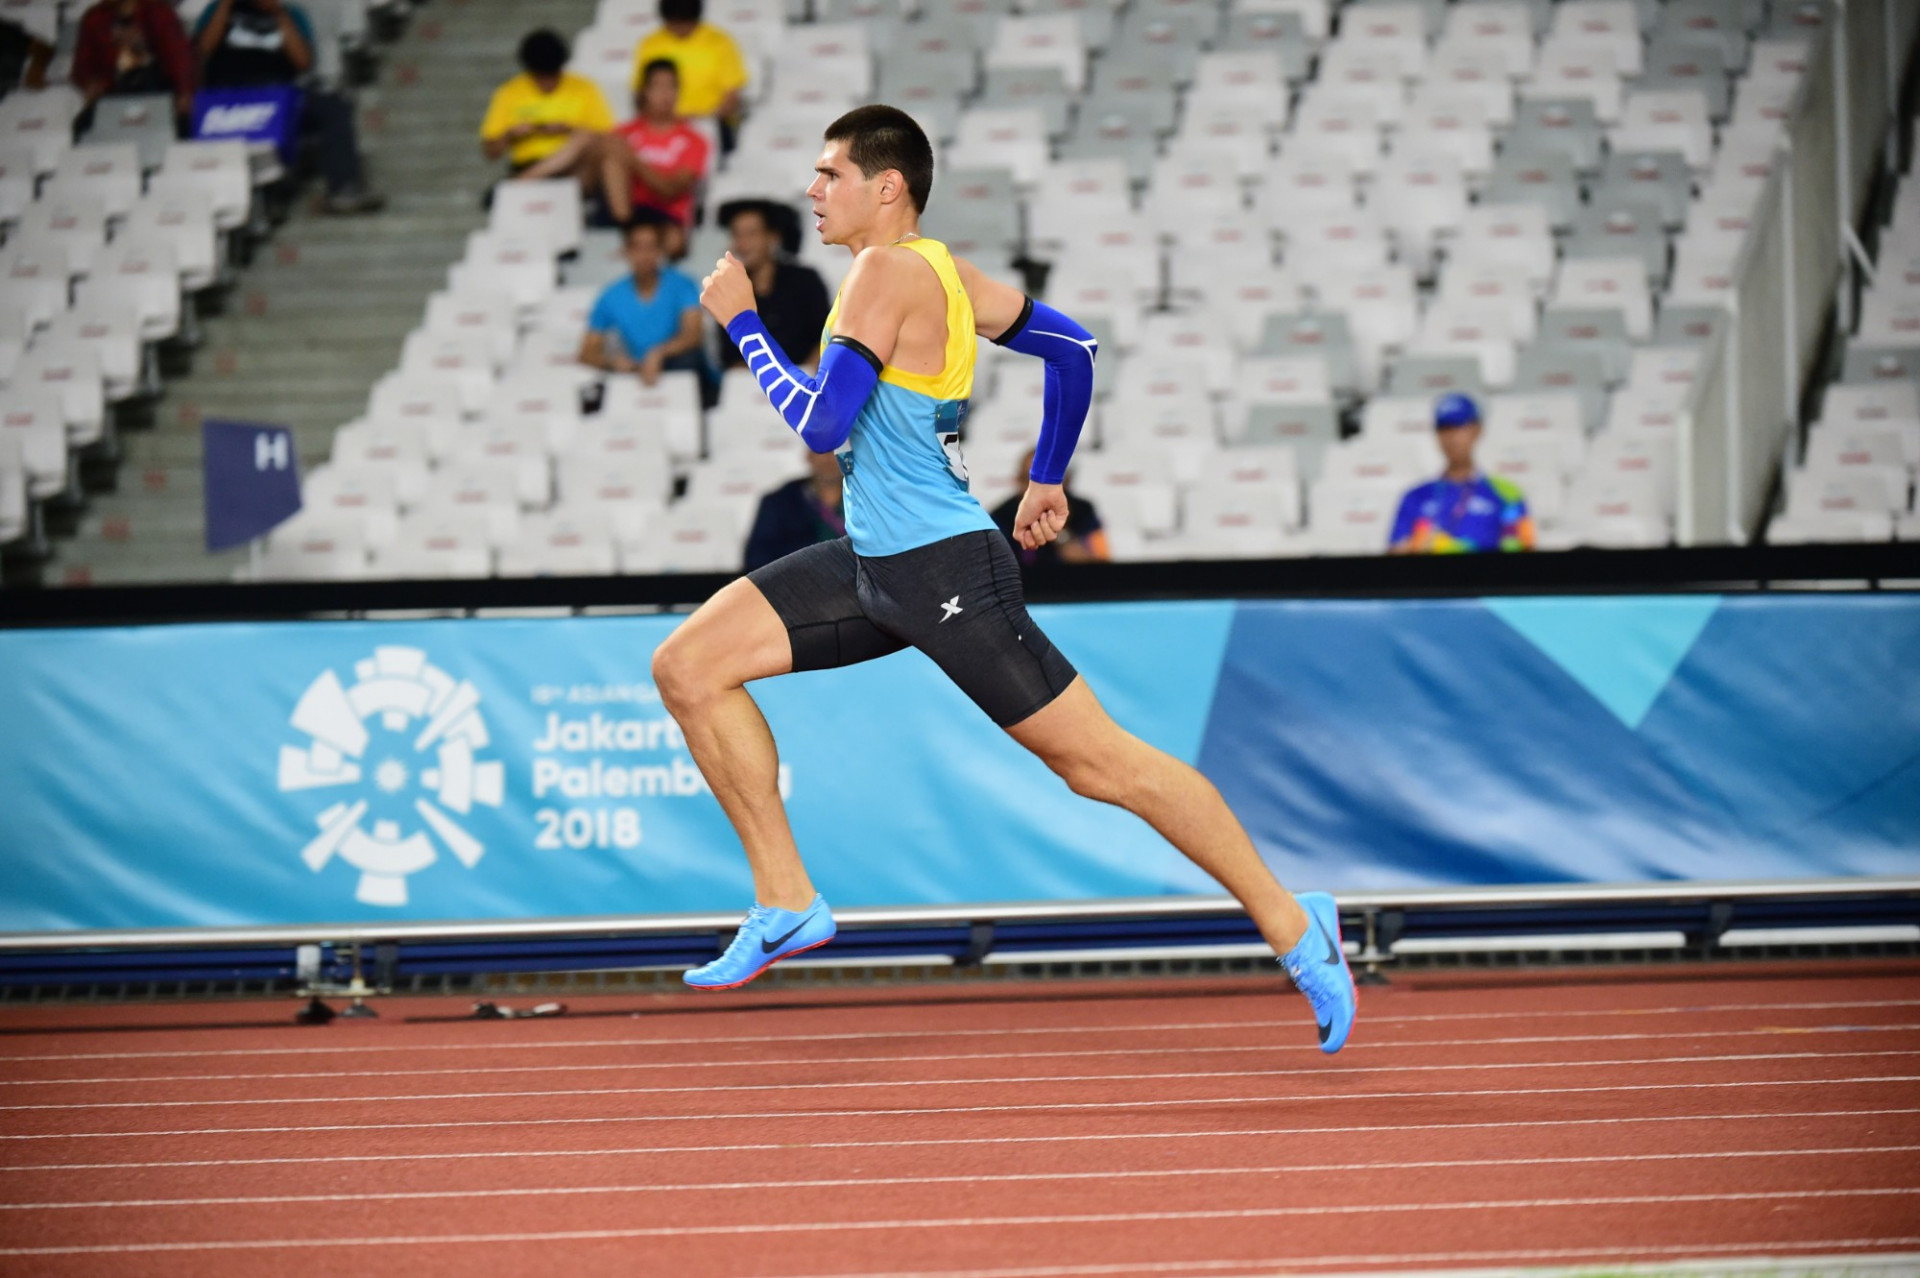 Field and track athlete Litvin breaks new record of Kazakhstan